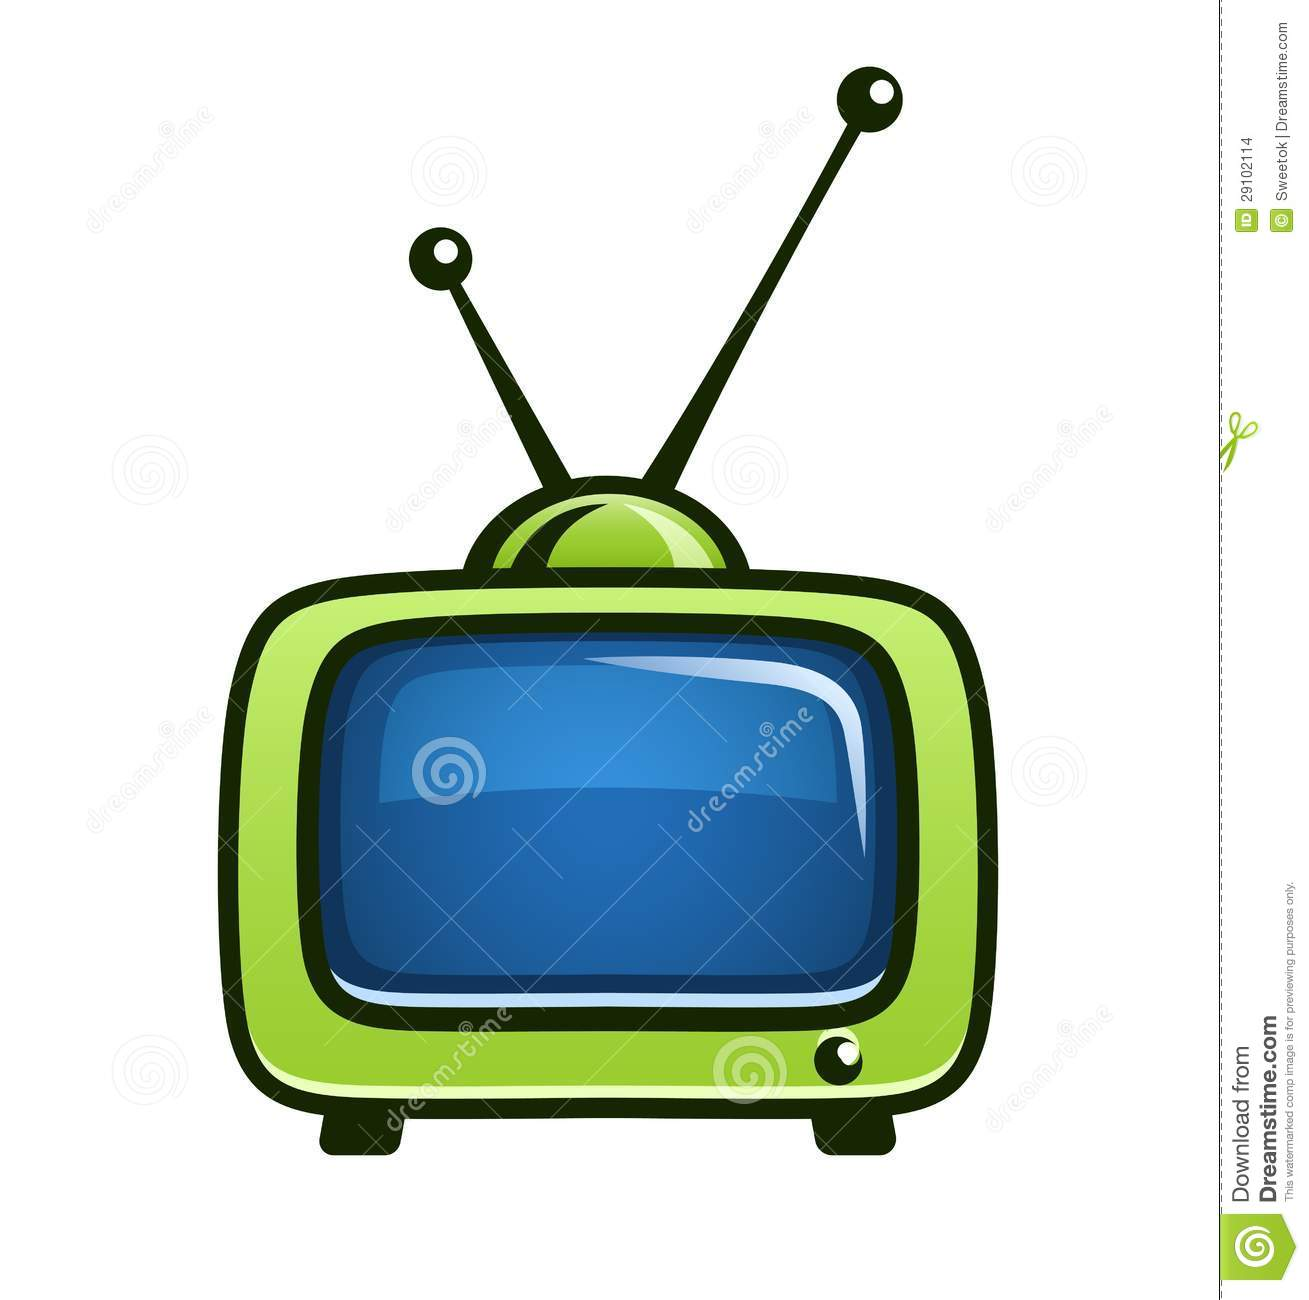 Old tv free download. Television clipart green